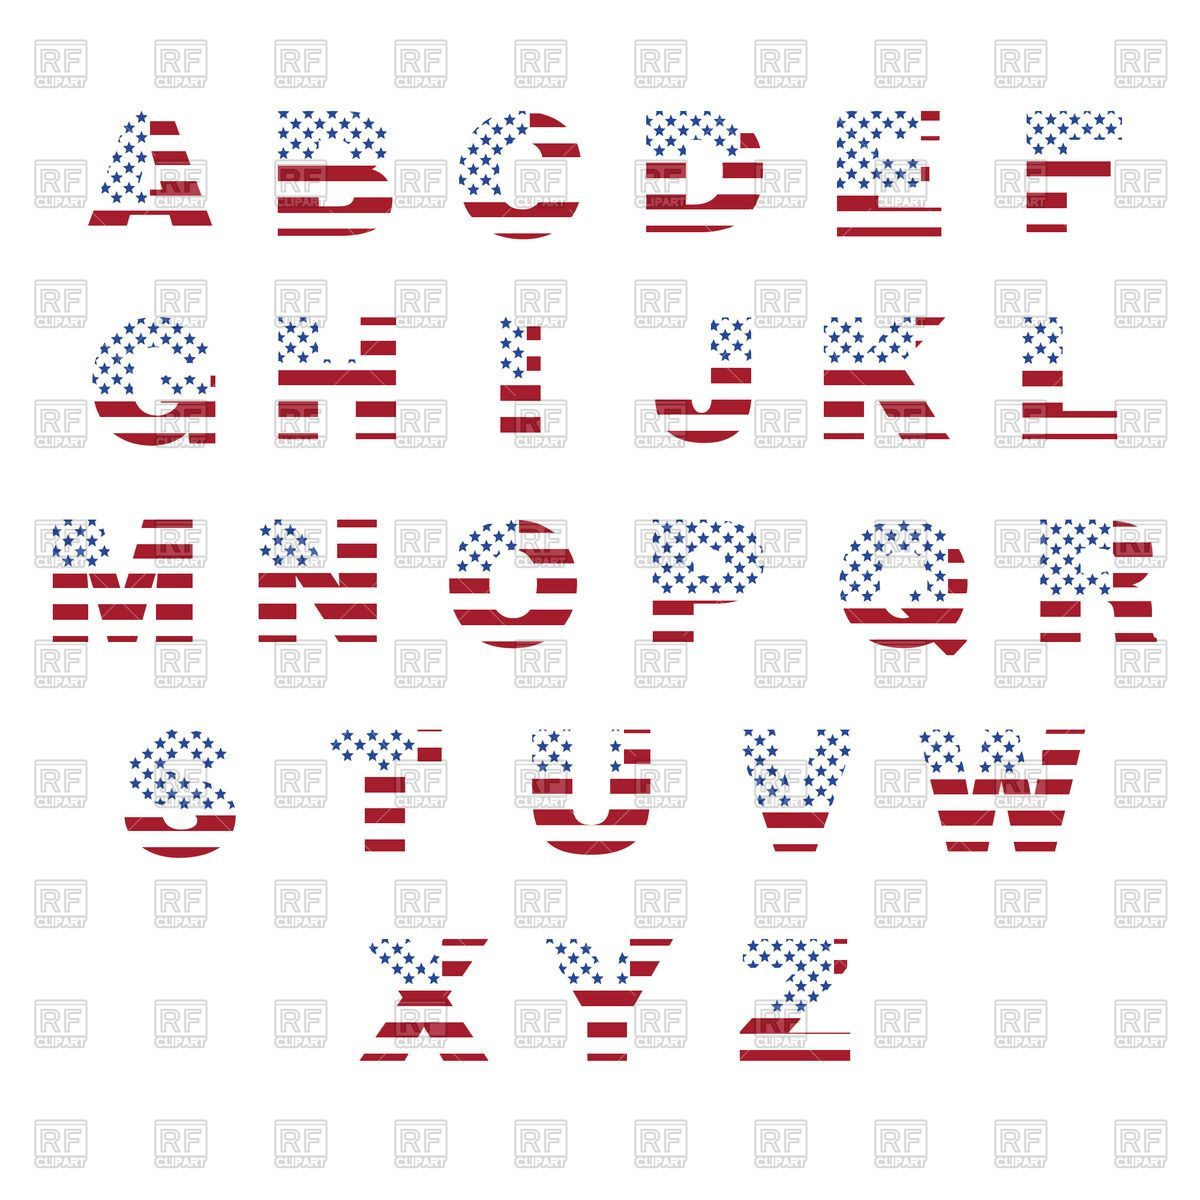 hight resolution of alphabet with pattern of usa flag royalty free vector clip art image 73013 rfclipart